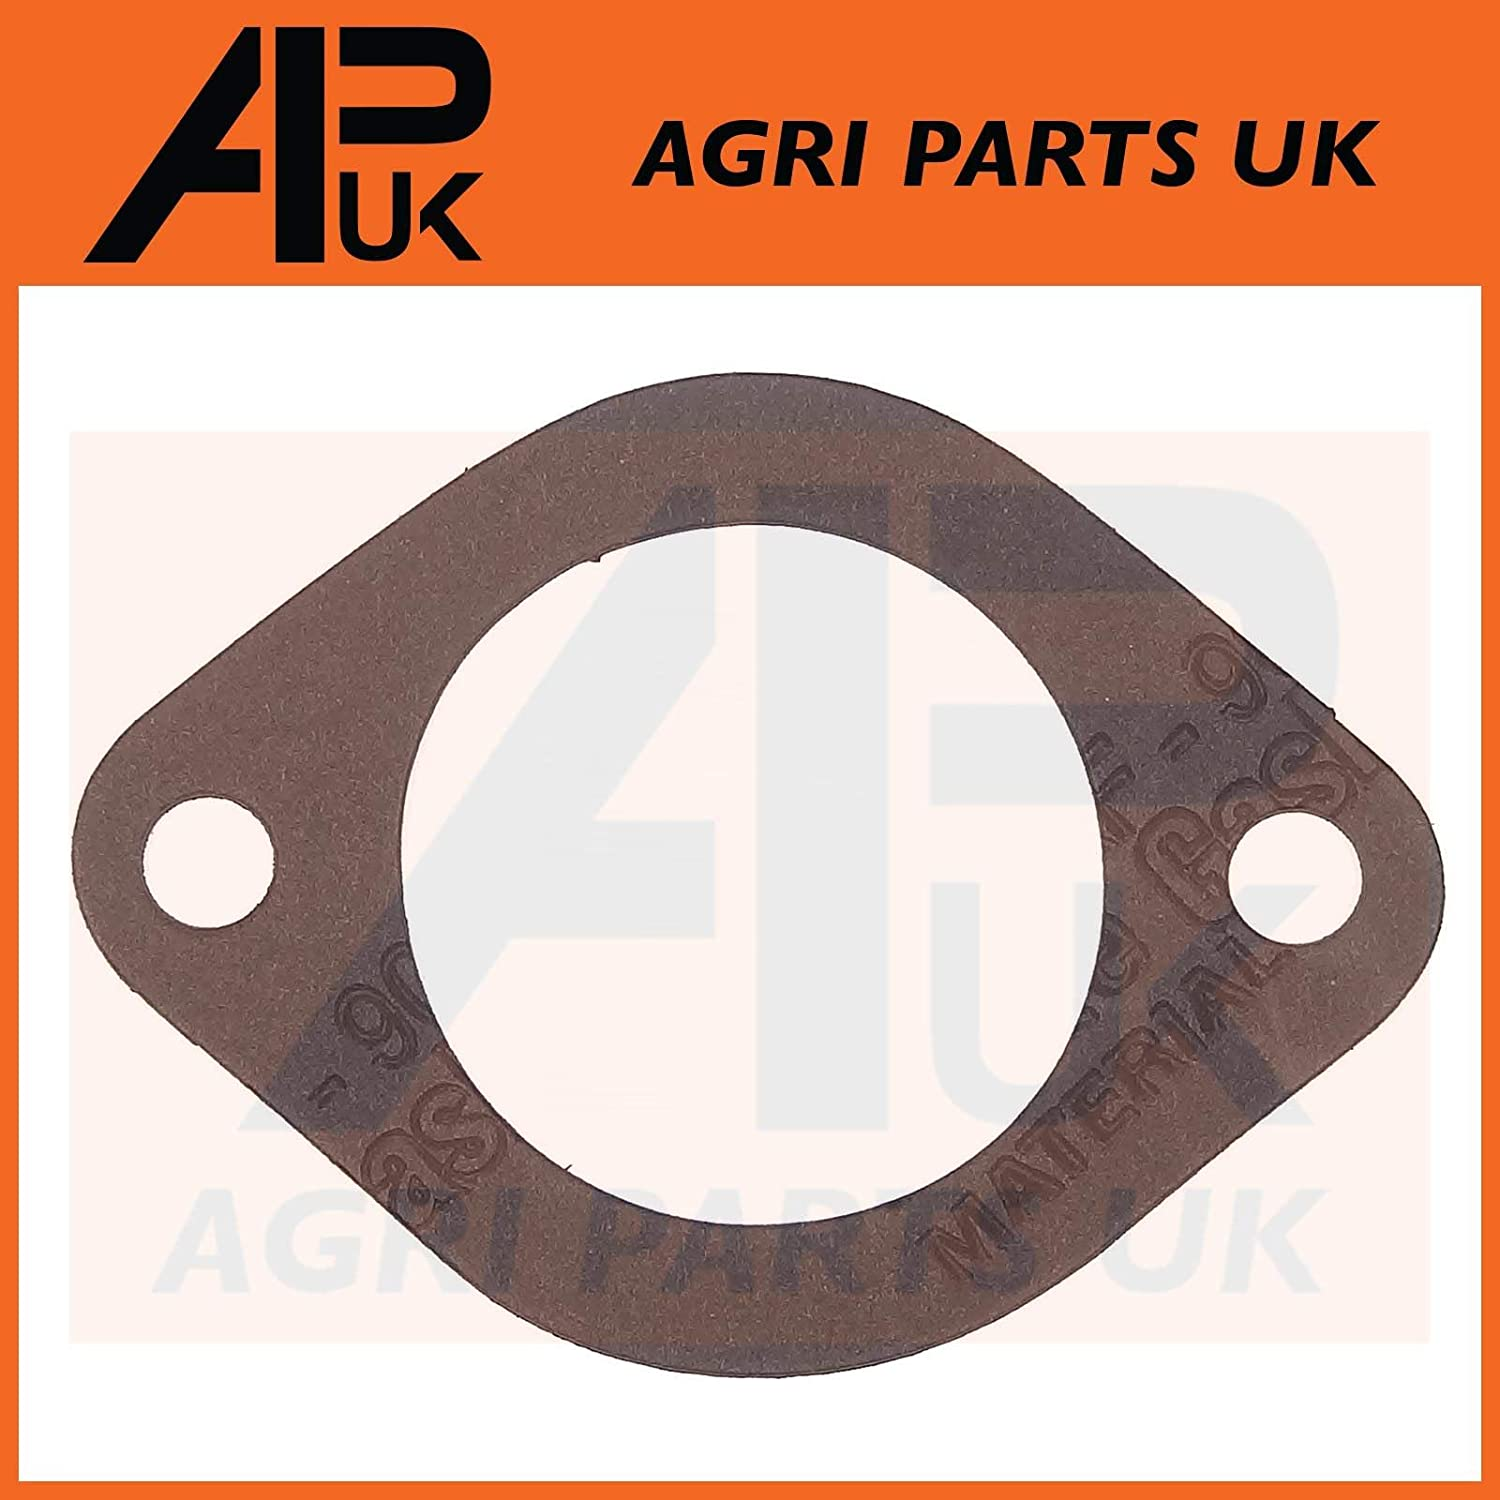 APUK Massey Ferguson 35 35X 135 148 240 550 Tractor Thermostat Housing Gasket Perkins Agri Parts UK Ltd